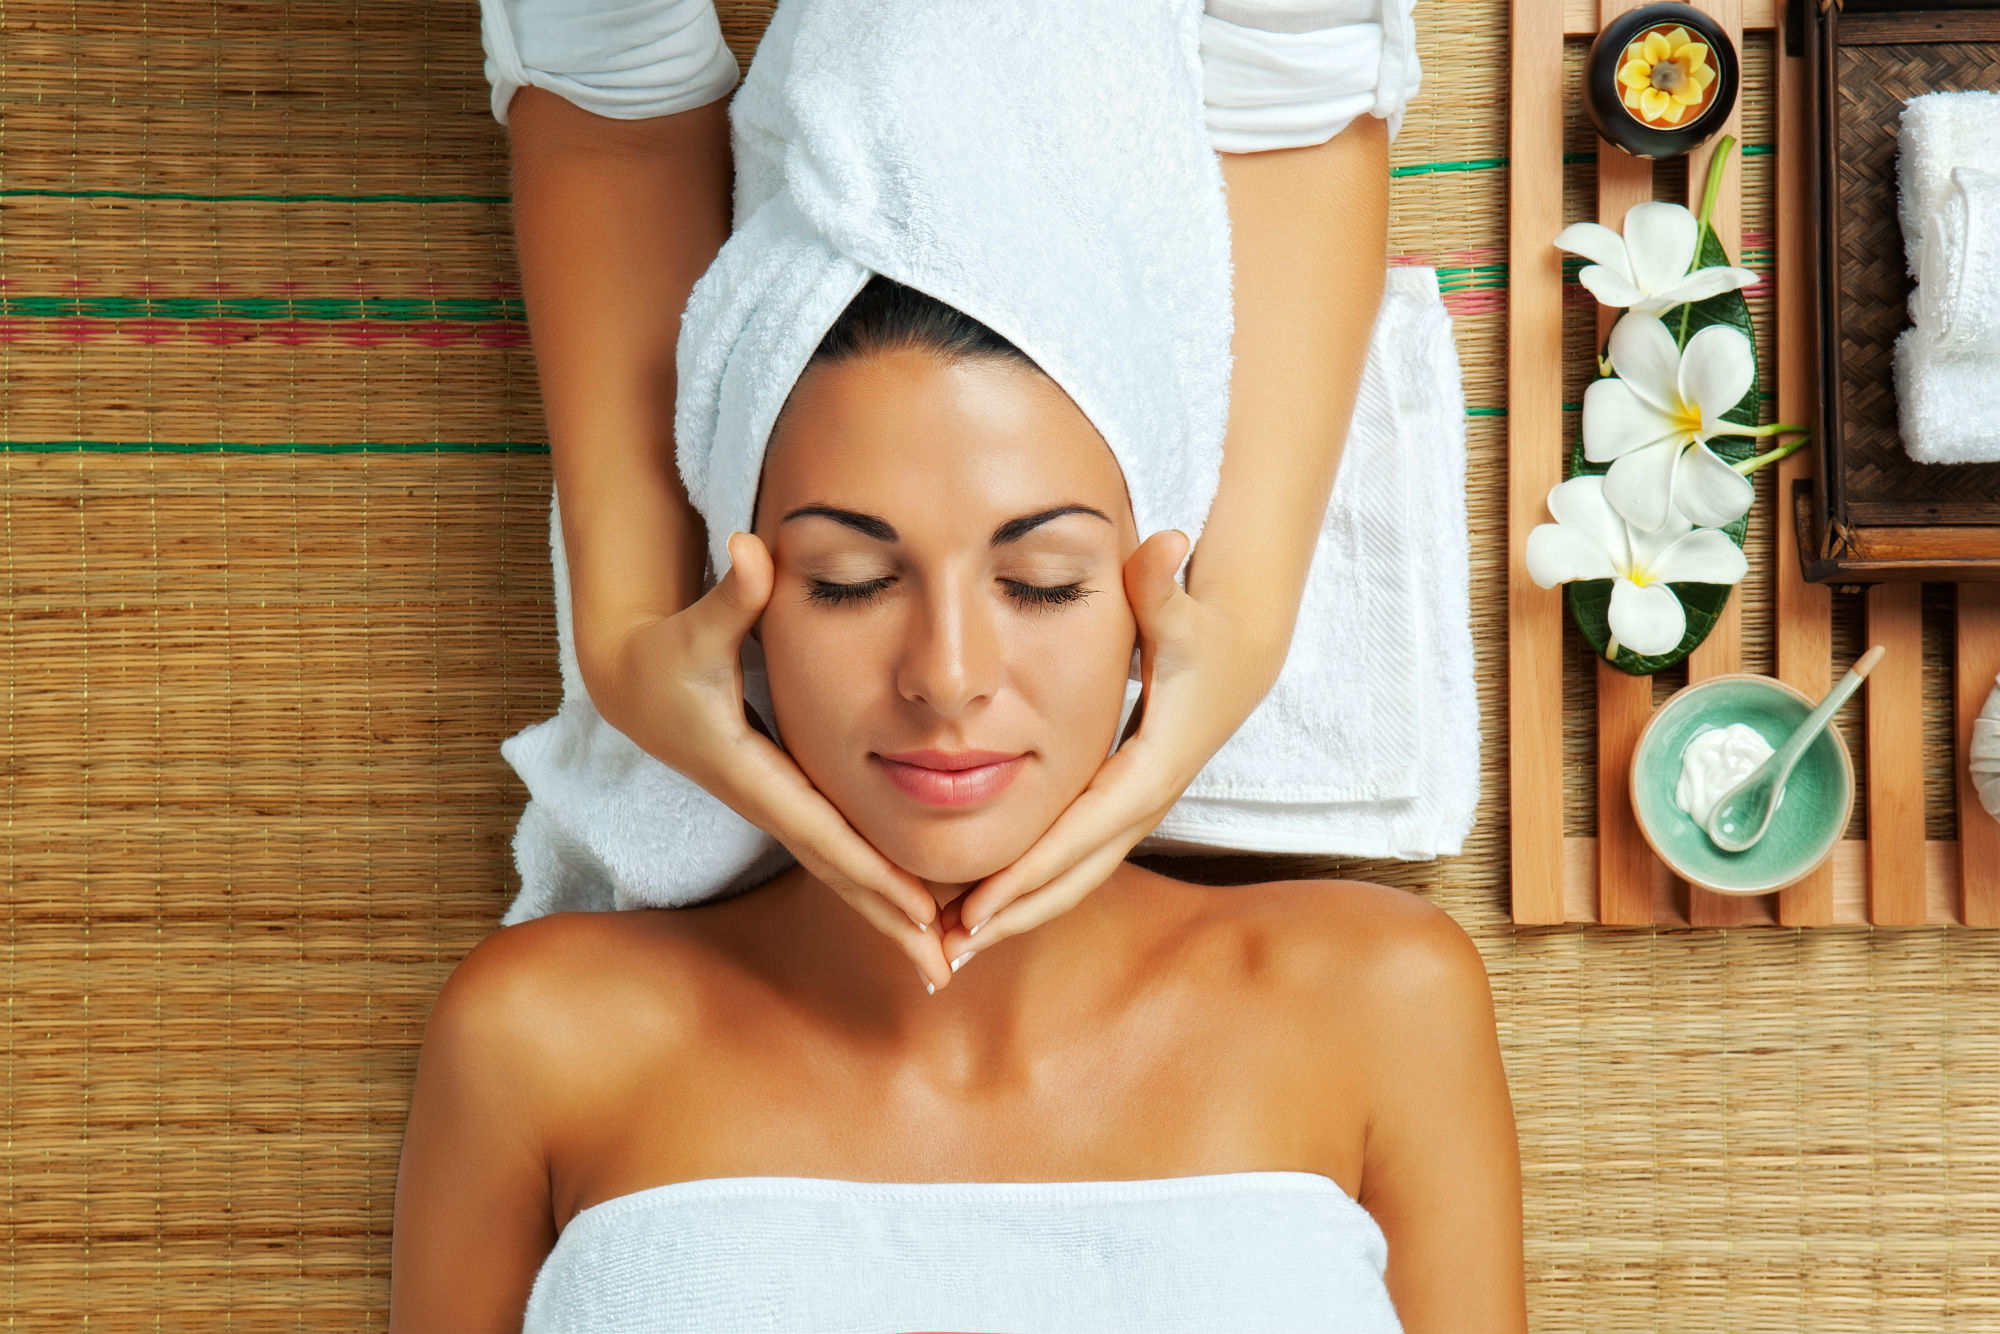 Enjoy a stress relieving spa day in our Breckenridge Spa